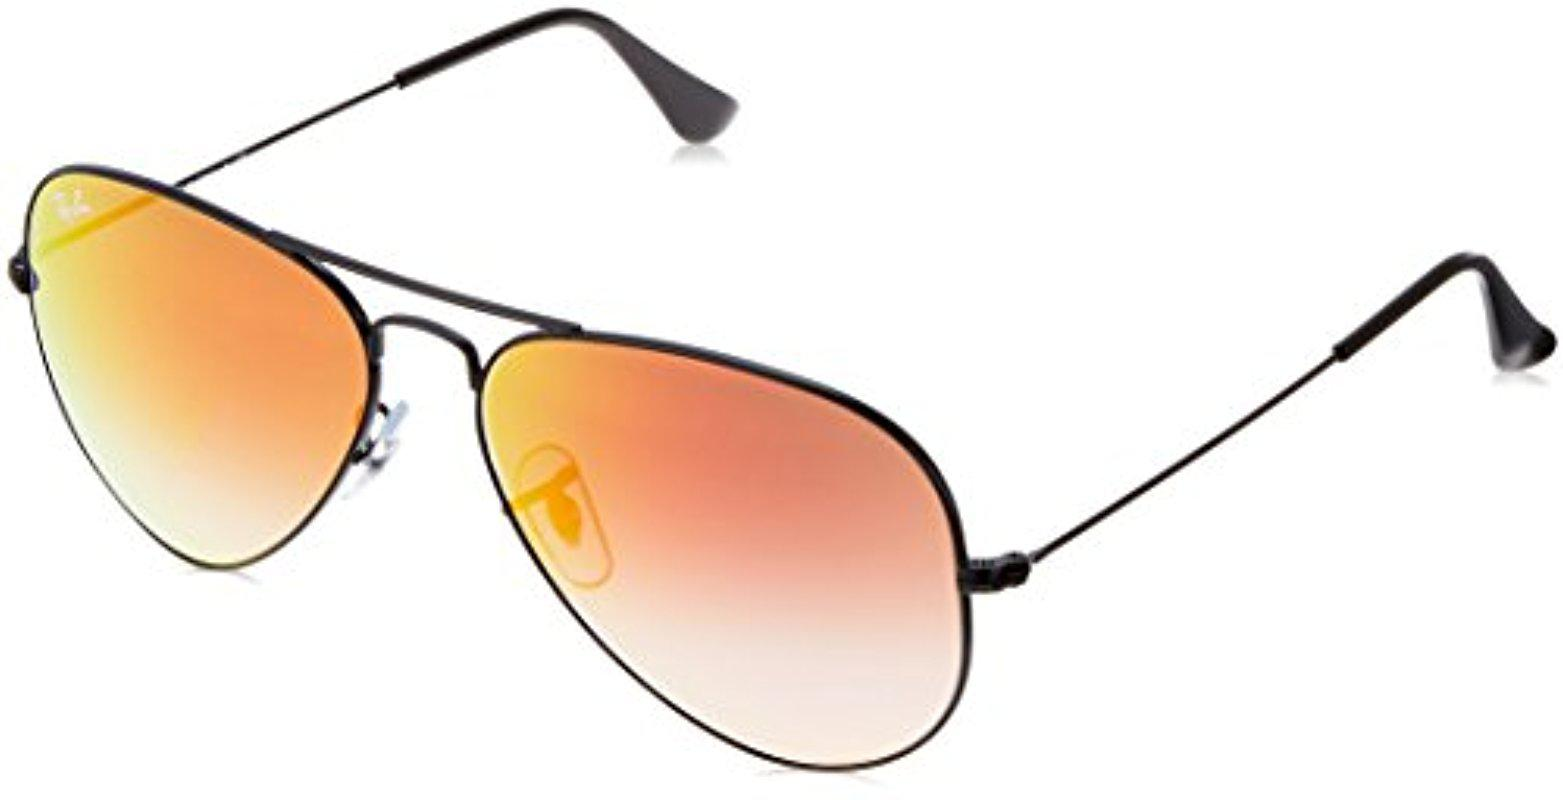 b027a483658 Lyst - Ray-Ban 3025 Aviator Large Metal Mirrored Non-polarized ...